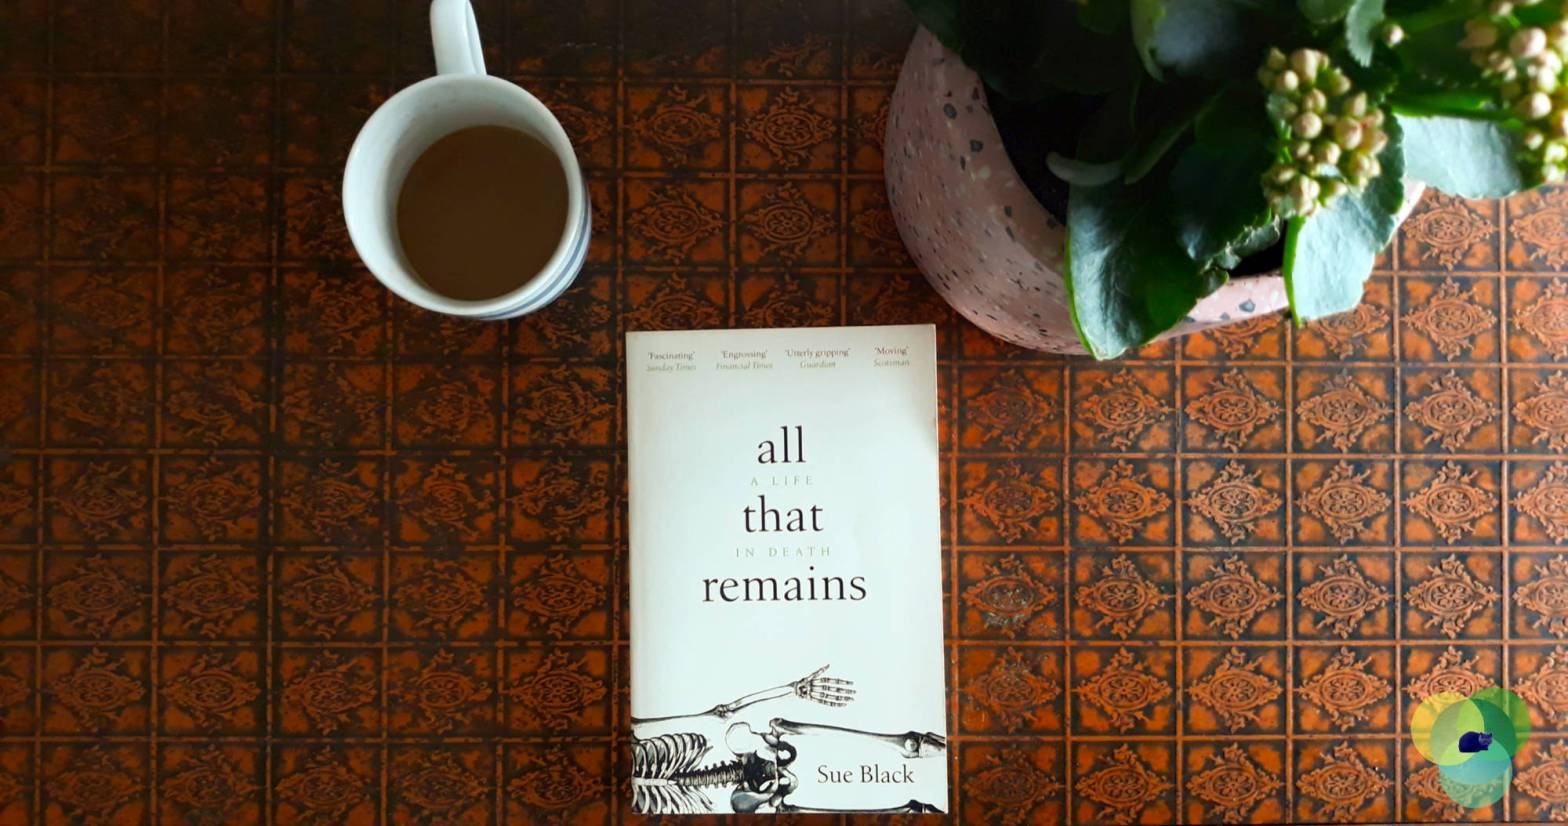 Book Review: All that Remains: A Life in Death by Sue Black